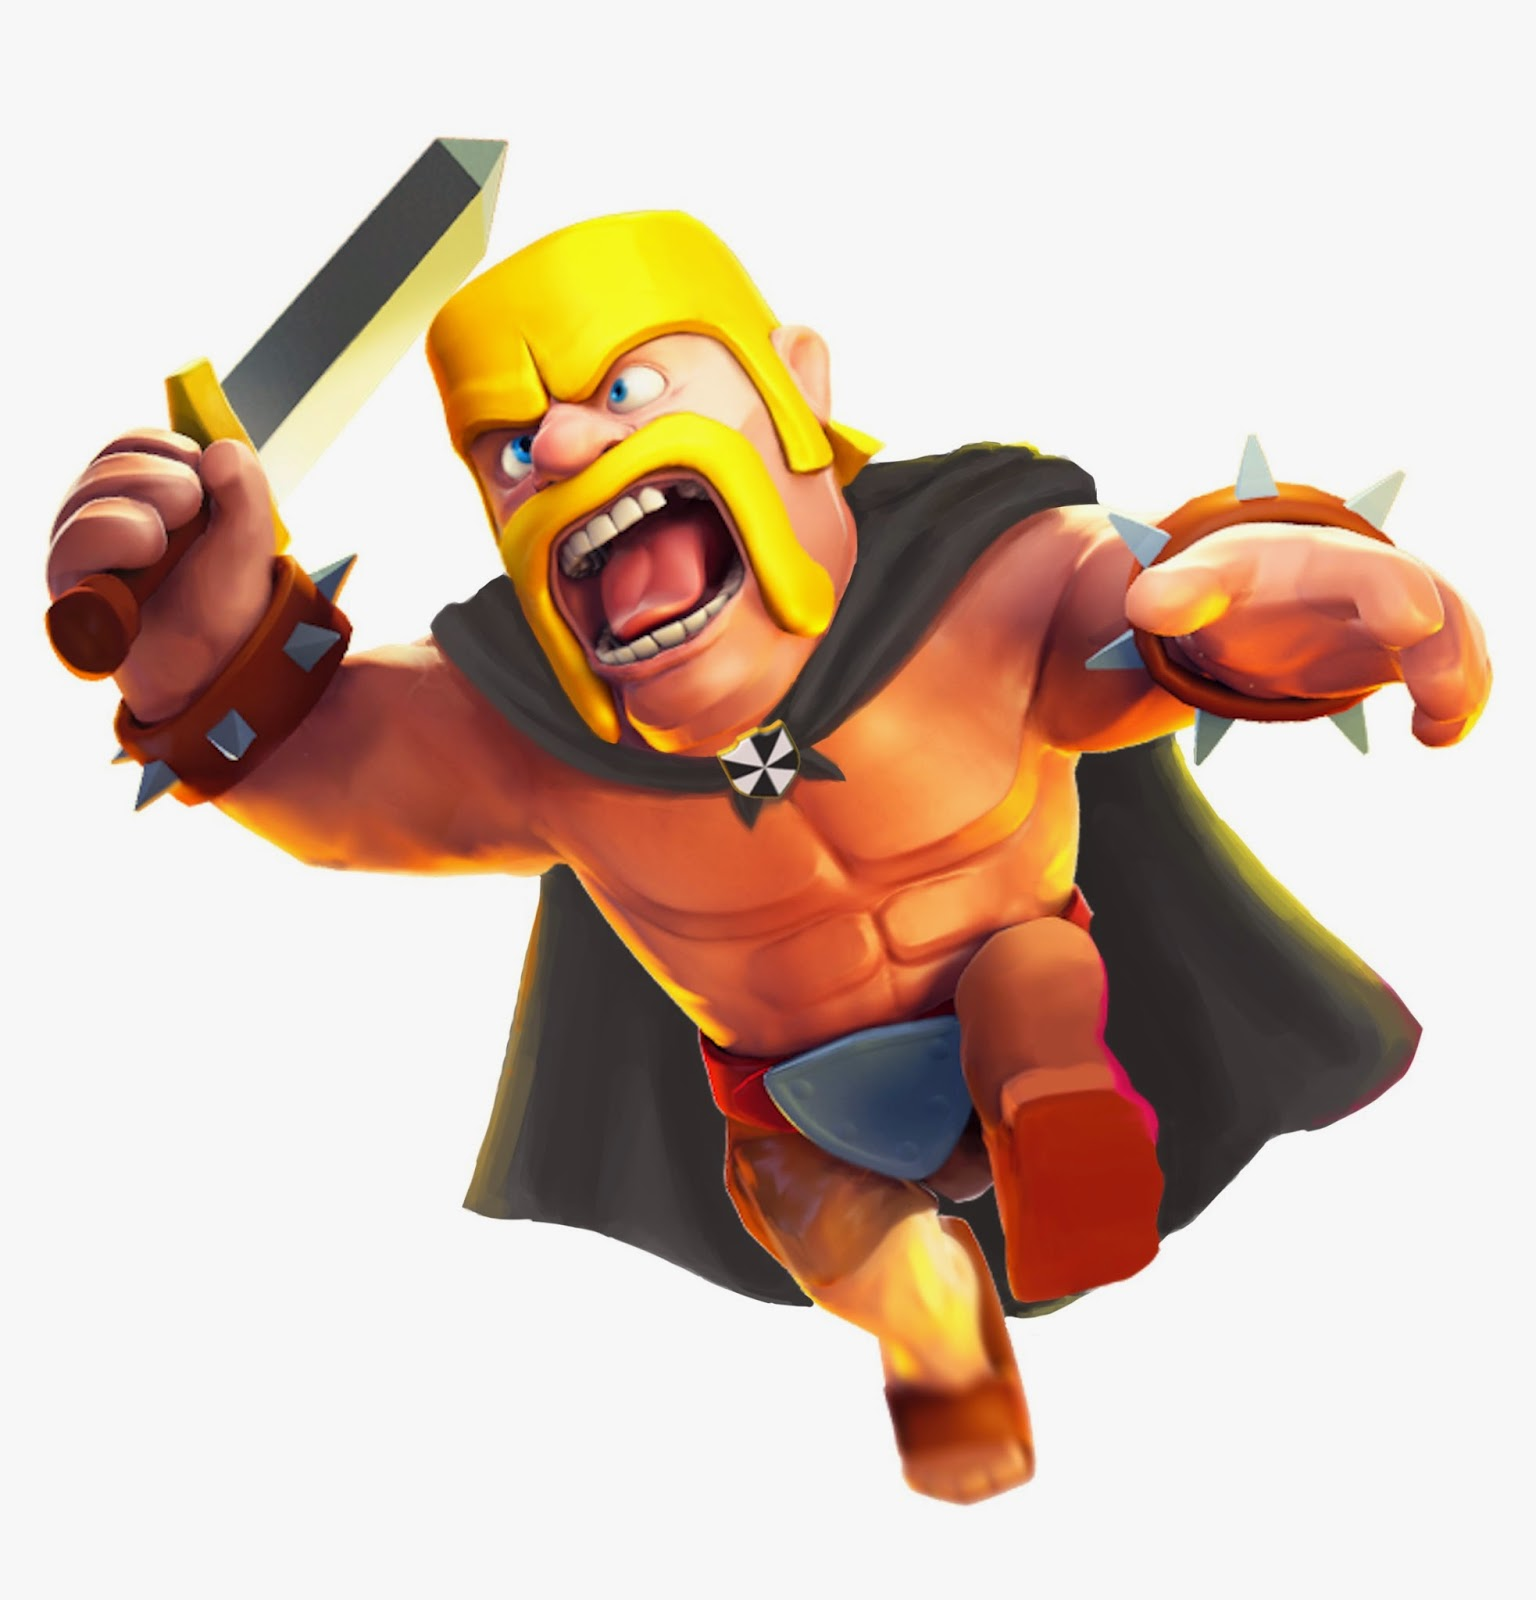 Clash of Clans Barbarian Clash of Clans Wallpaper 1536x1600